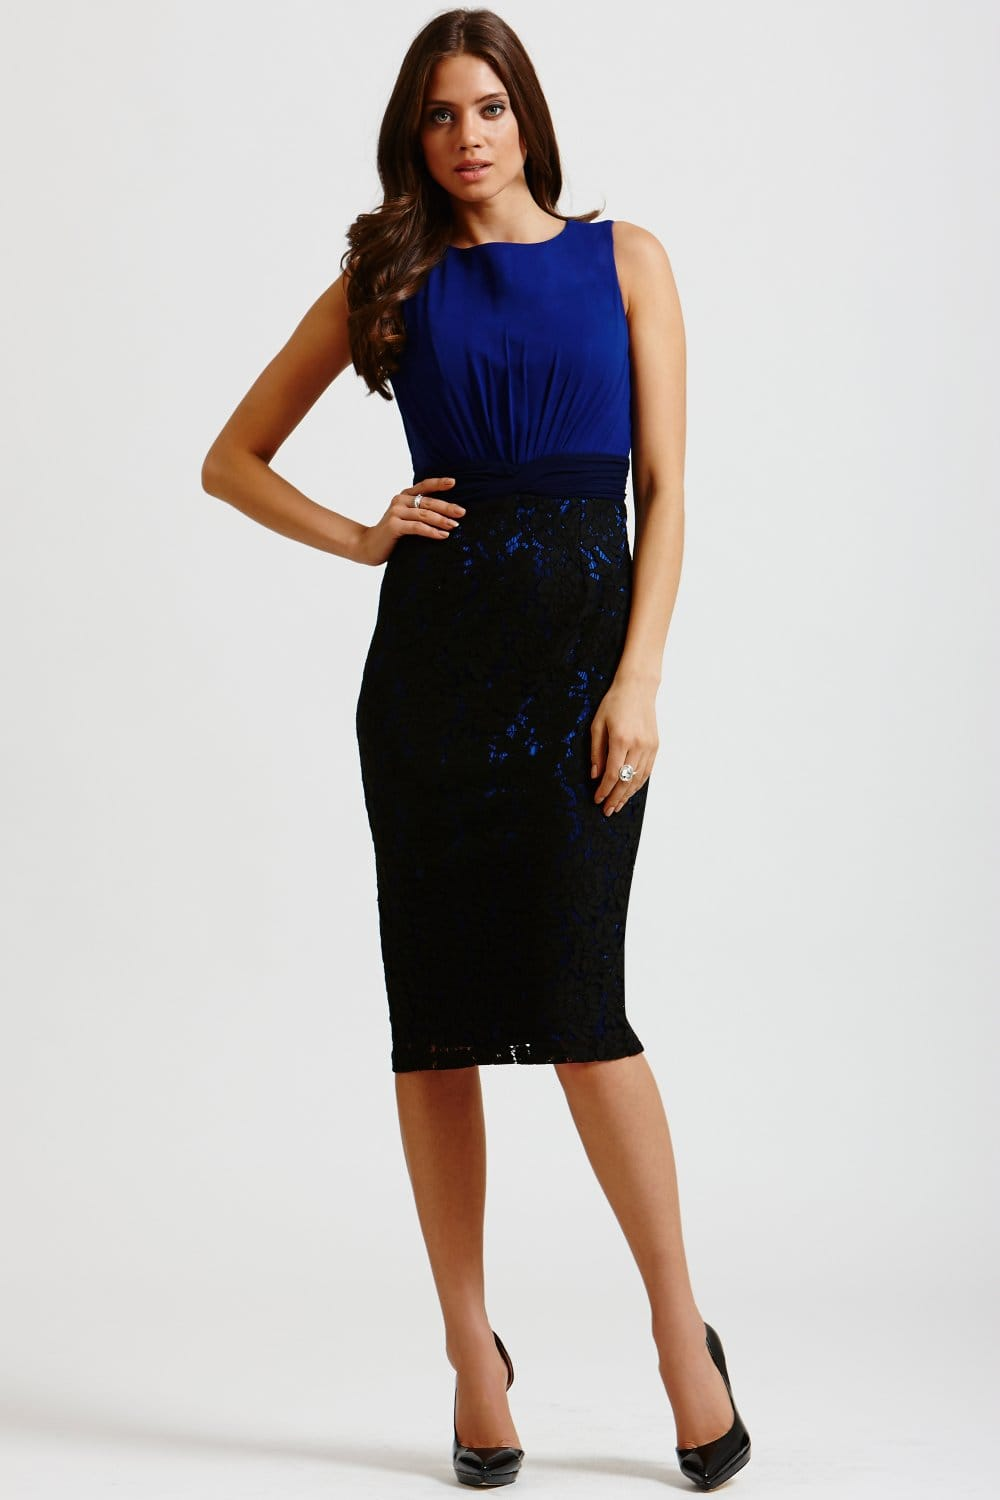 Blue And Black Lace Skirt Wiggle Dress From Little